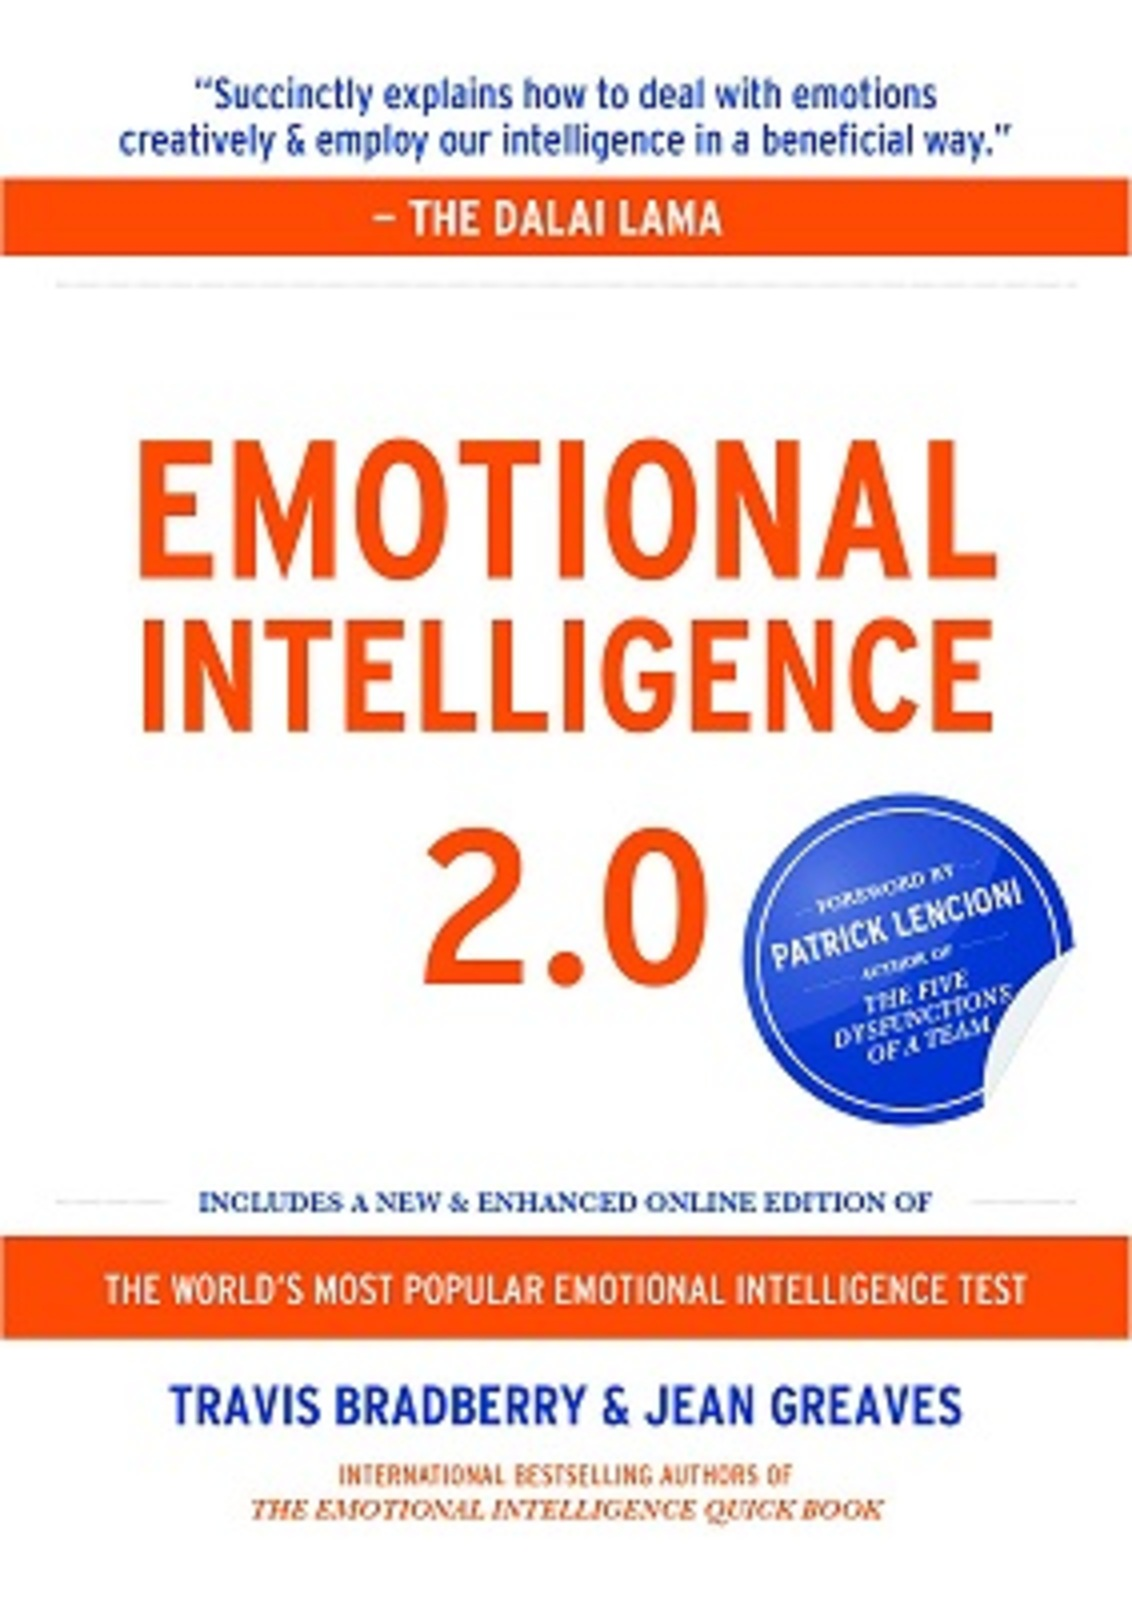 Emotional Intelligence 2.0 by Jean Greaves